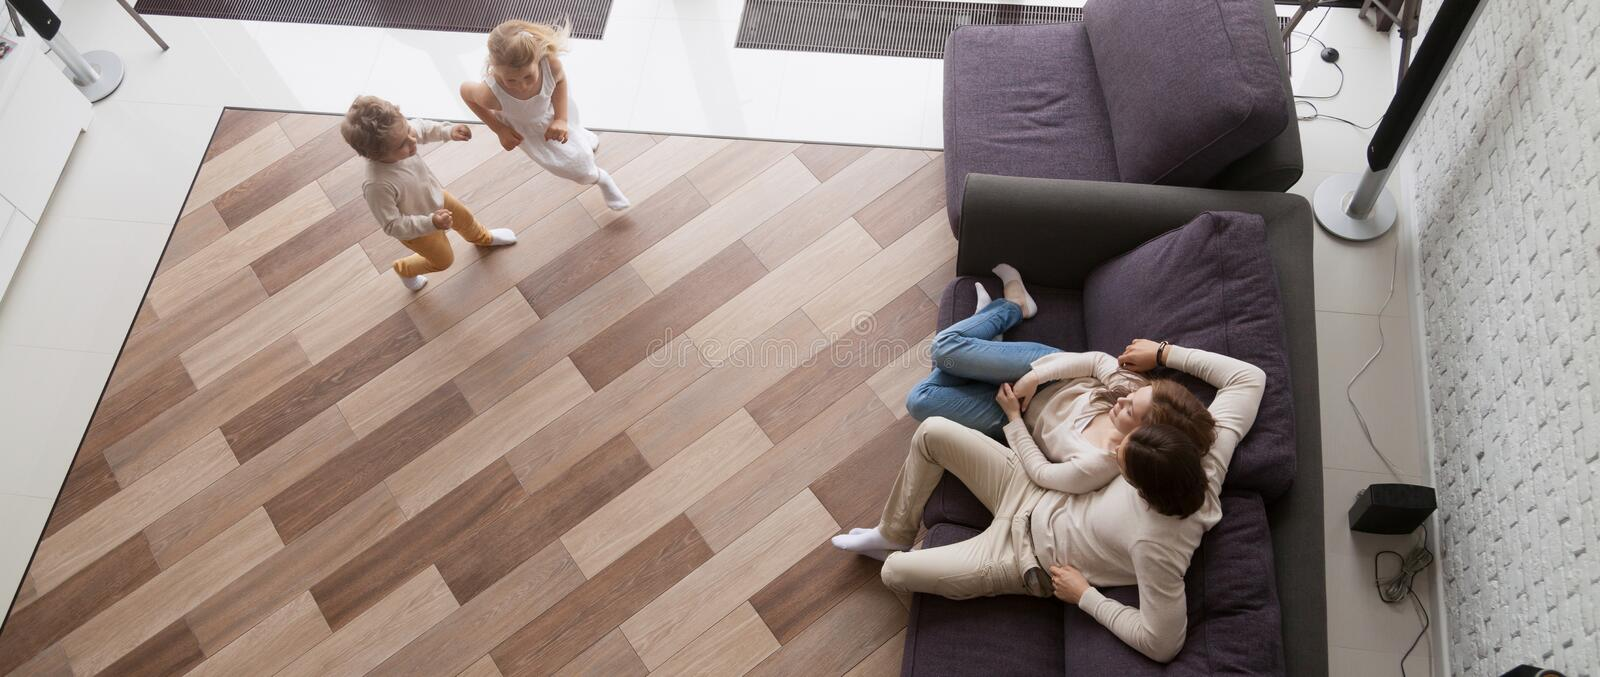 Above view parents resting on couch children running playing together stock image